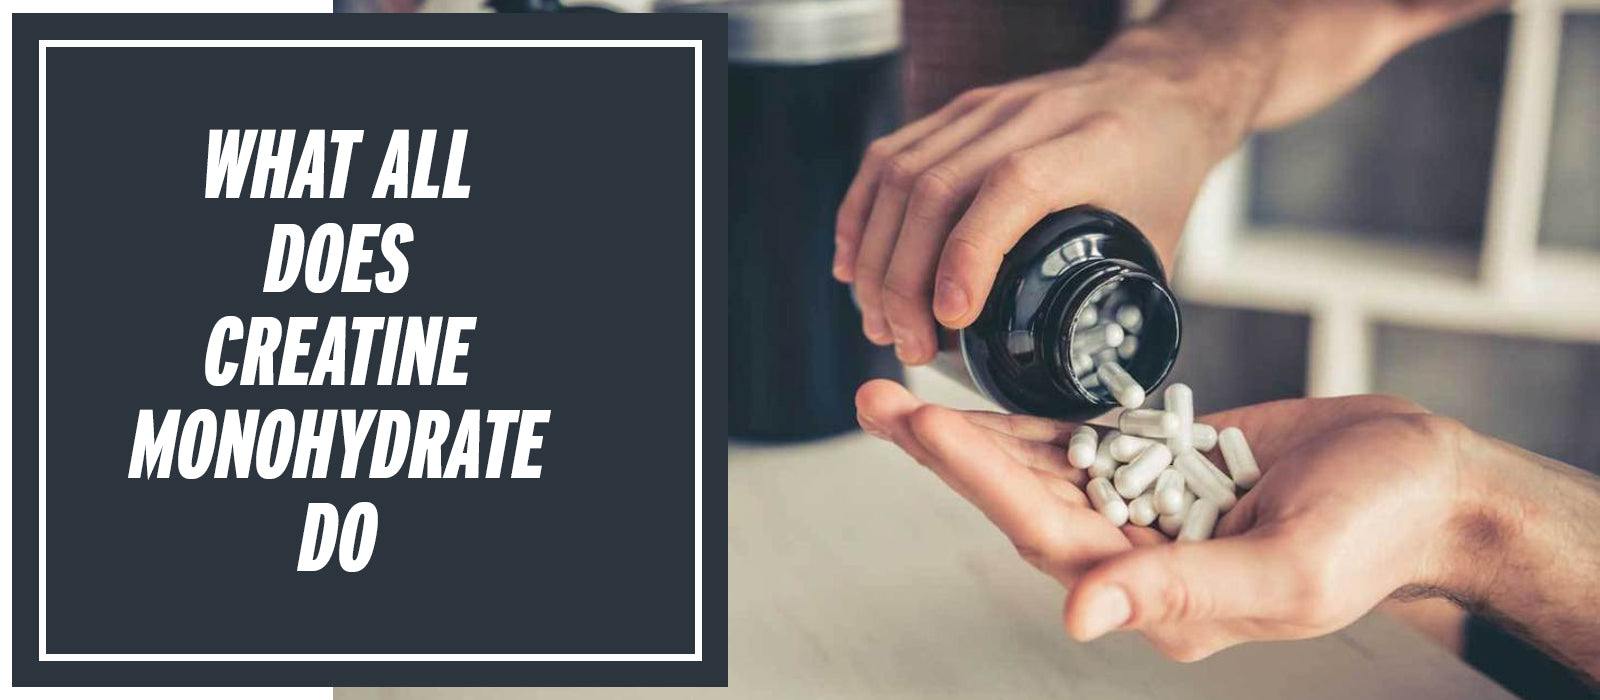 What All Does Creatine Monohydrate Do